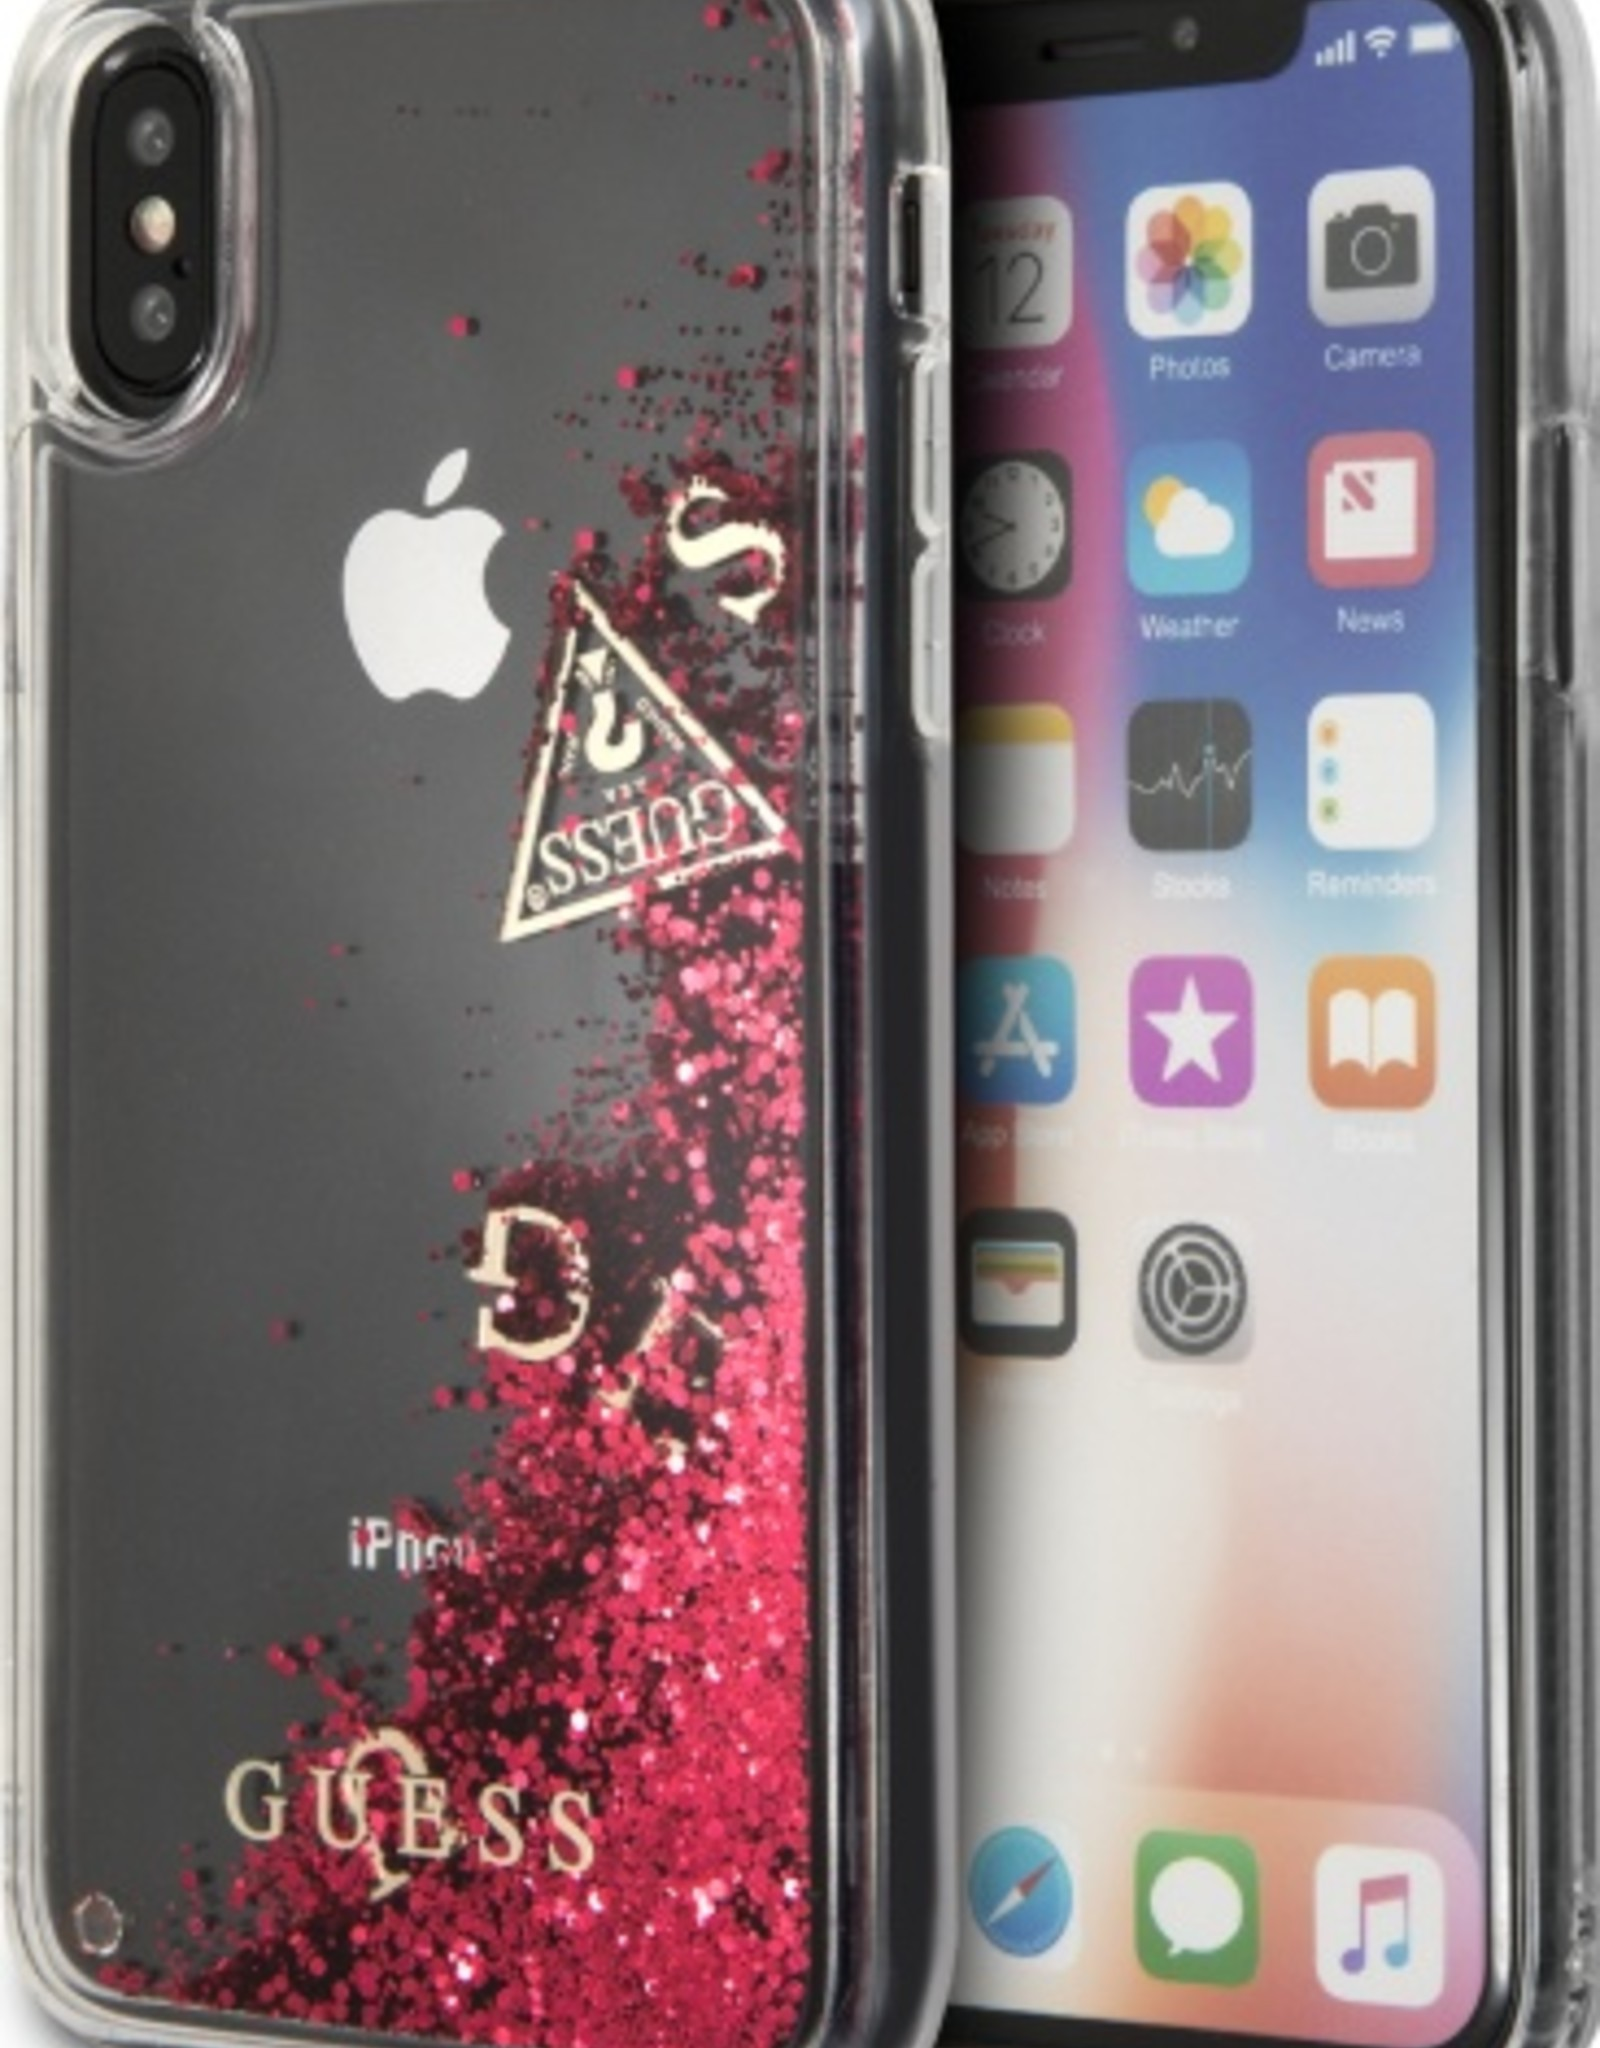 Guess | IPhone X Floating Glitter Red Hard Phone Case (Glitter Collection) | GUHCPXGLUFLRA